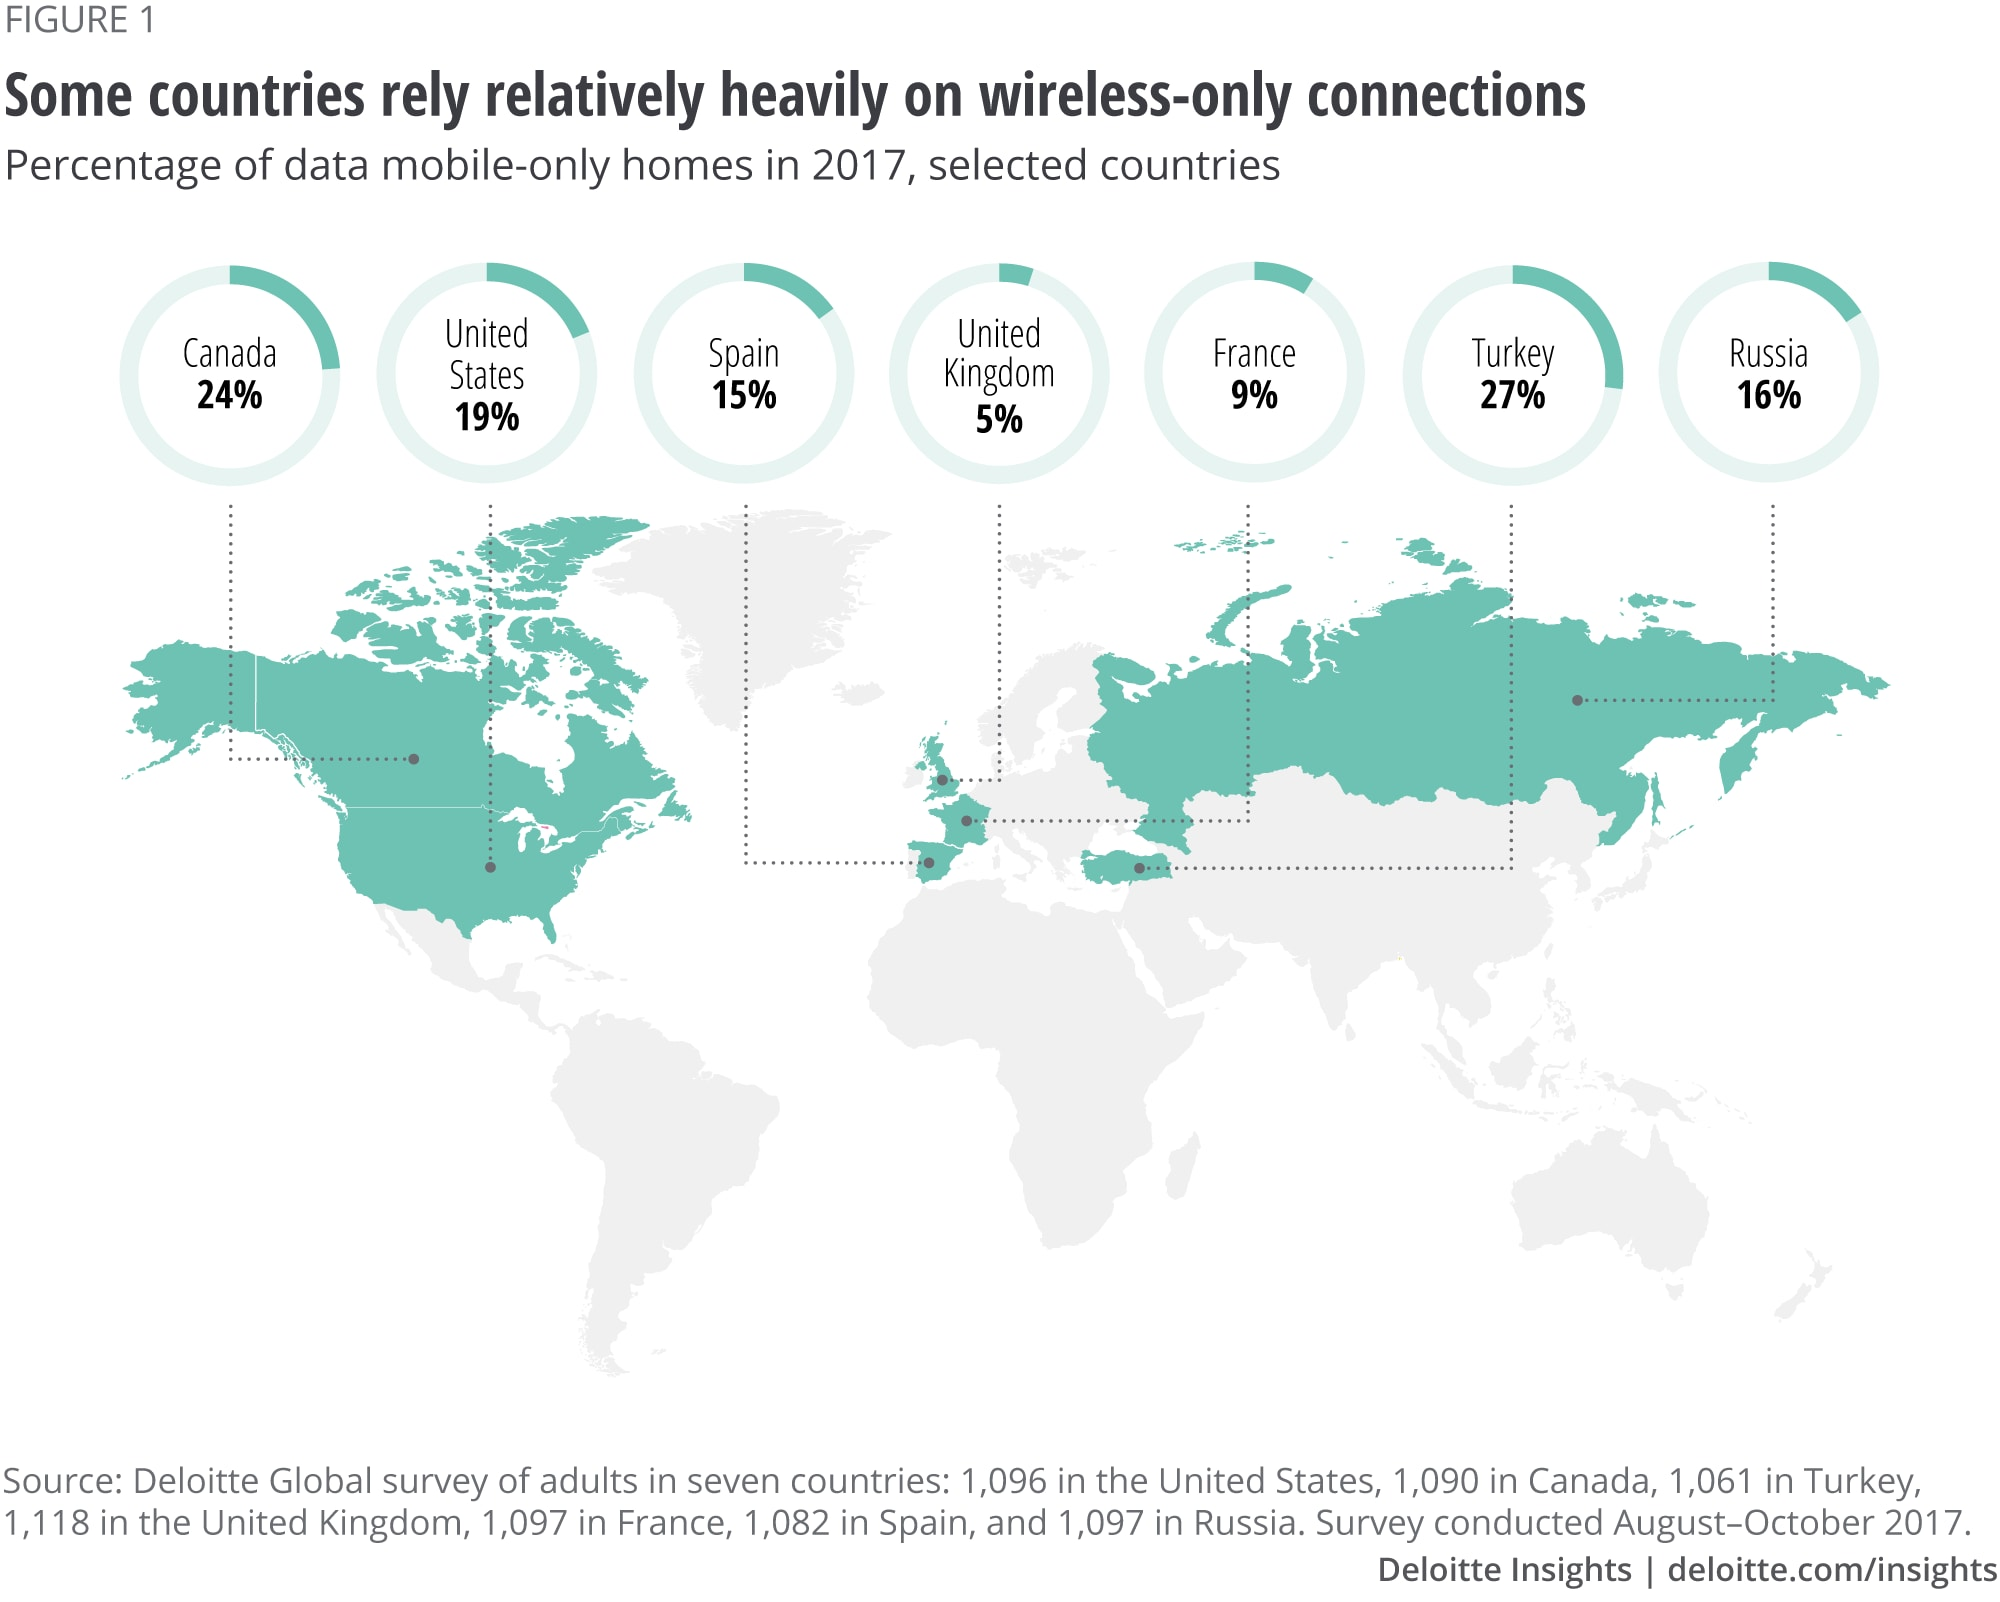 Some countries rely relatively heavily on wireless-only connections